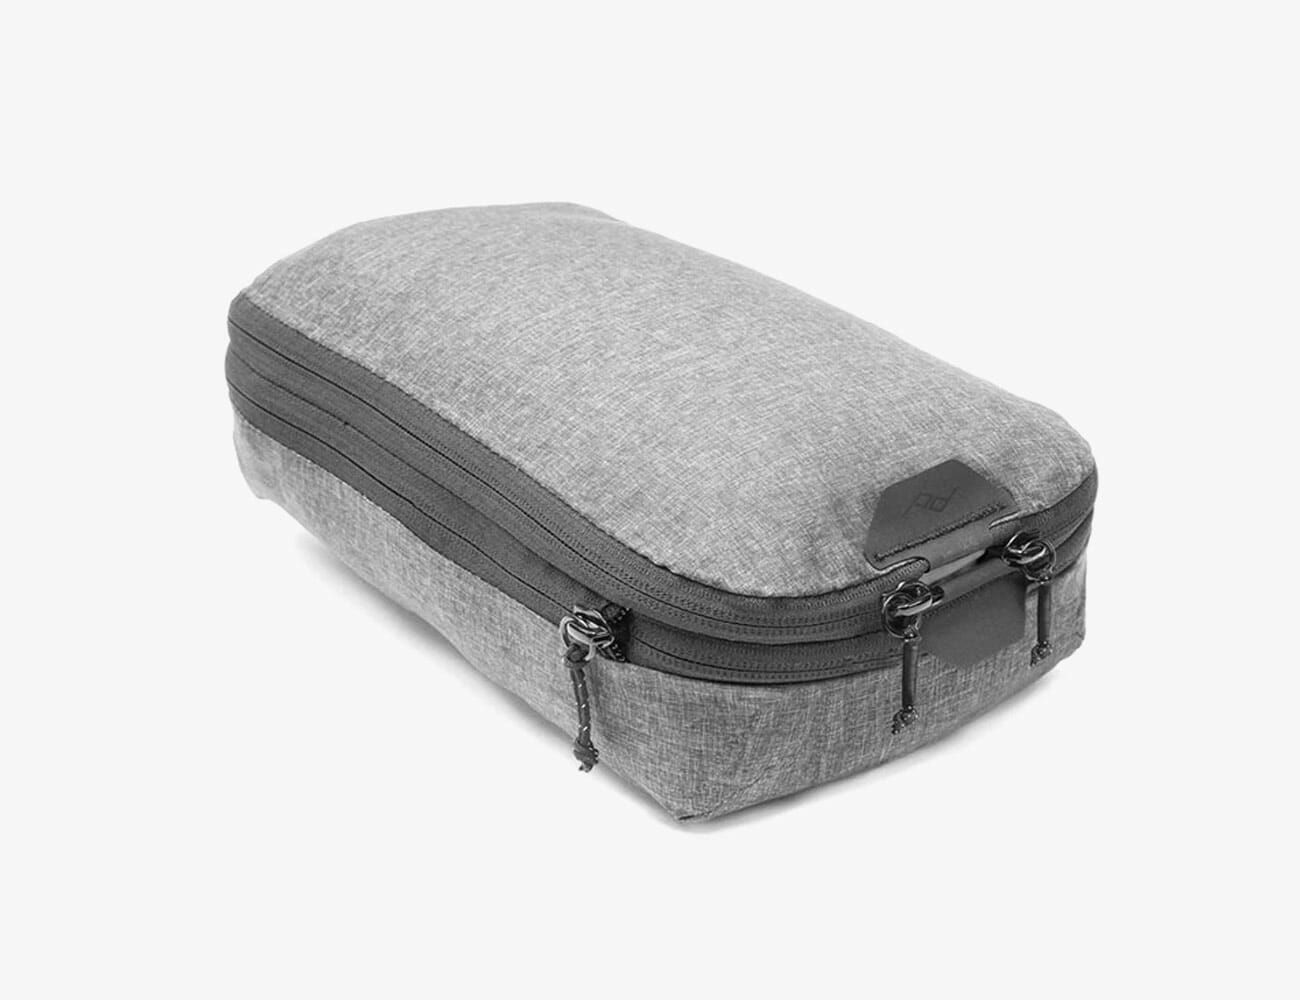 t 2 Wolves In Snow 3 Set Packing Cubes,2 Various Sizes Travel Luggage Packing Organizers